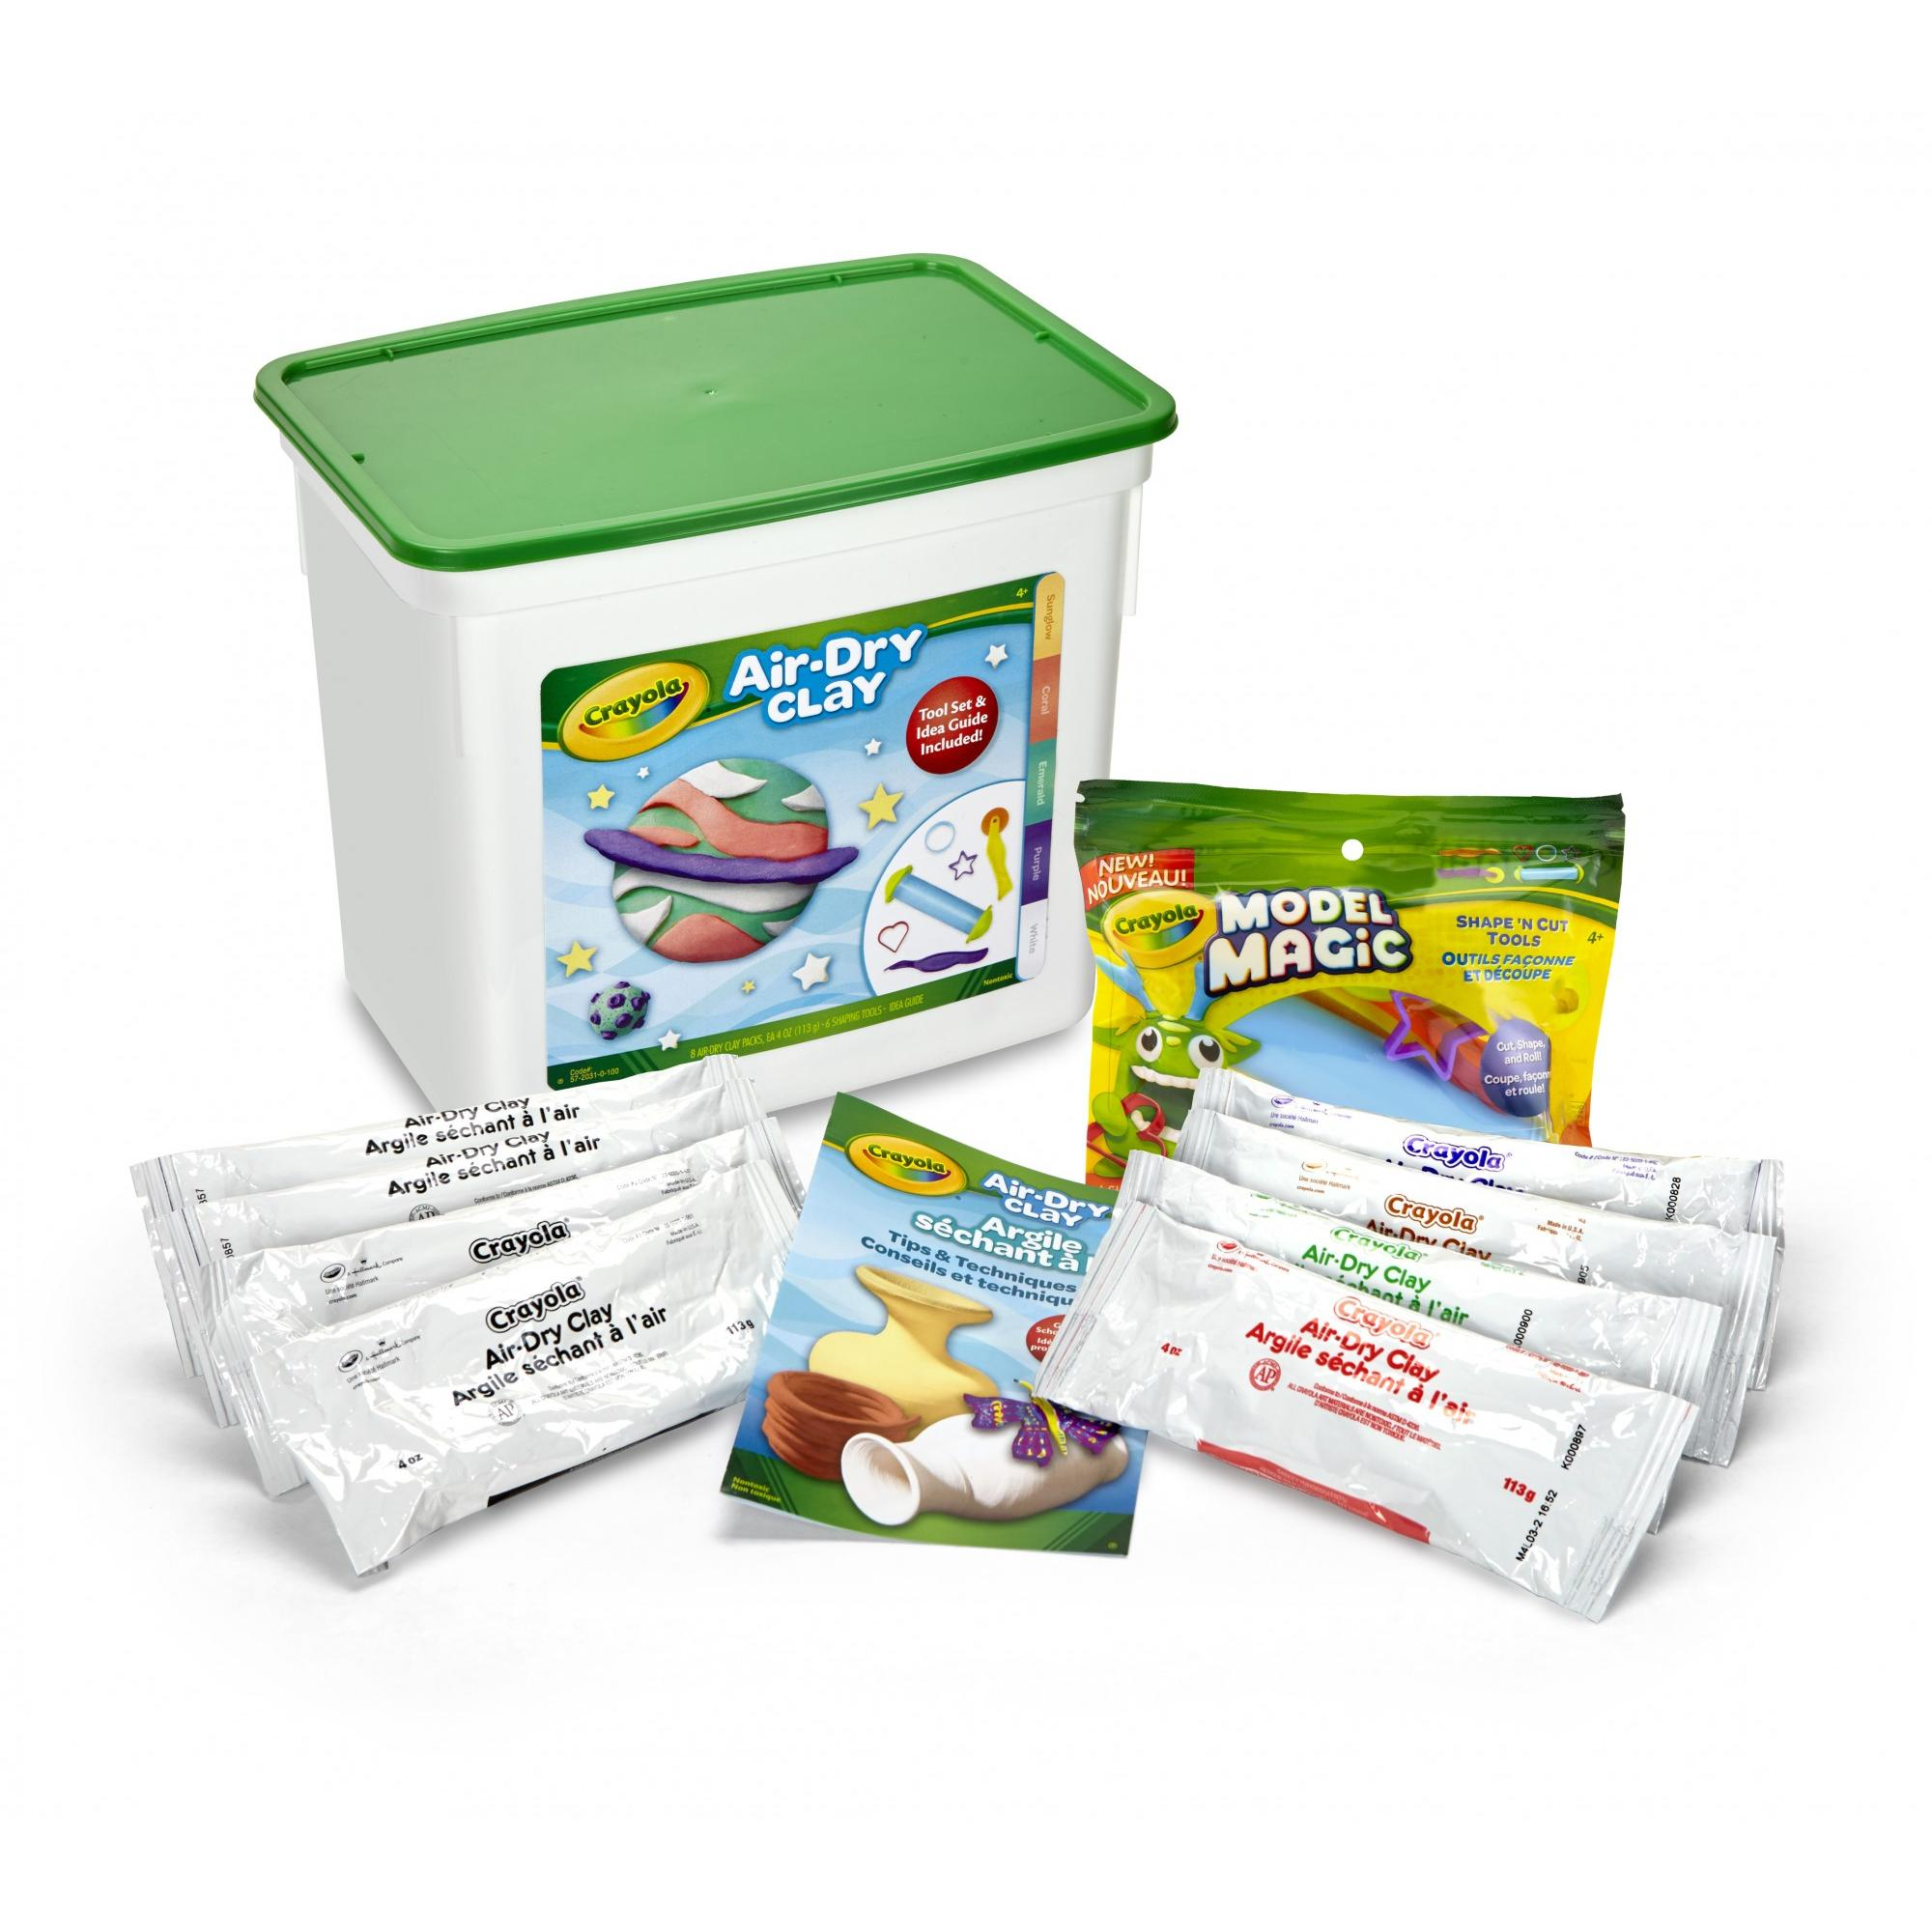 Crayola Air-Dry Clay Creativity Set with Tools and Instructions